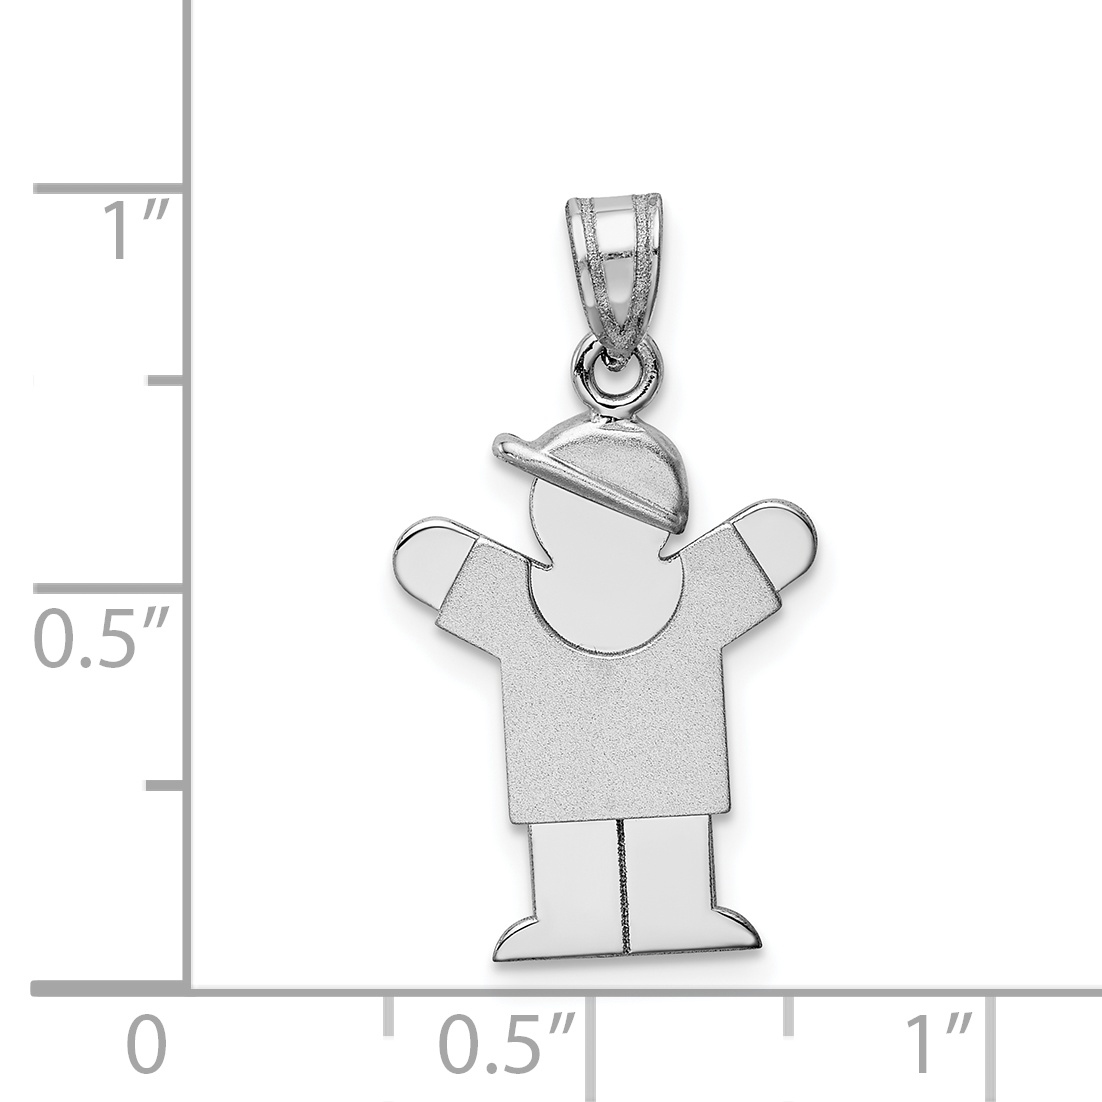 14K White Gold Small Boy w/Hat on Right Engravable Charm - image 1 de 2